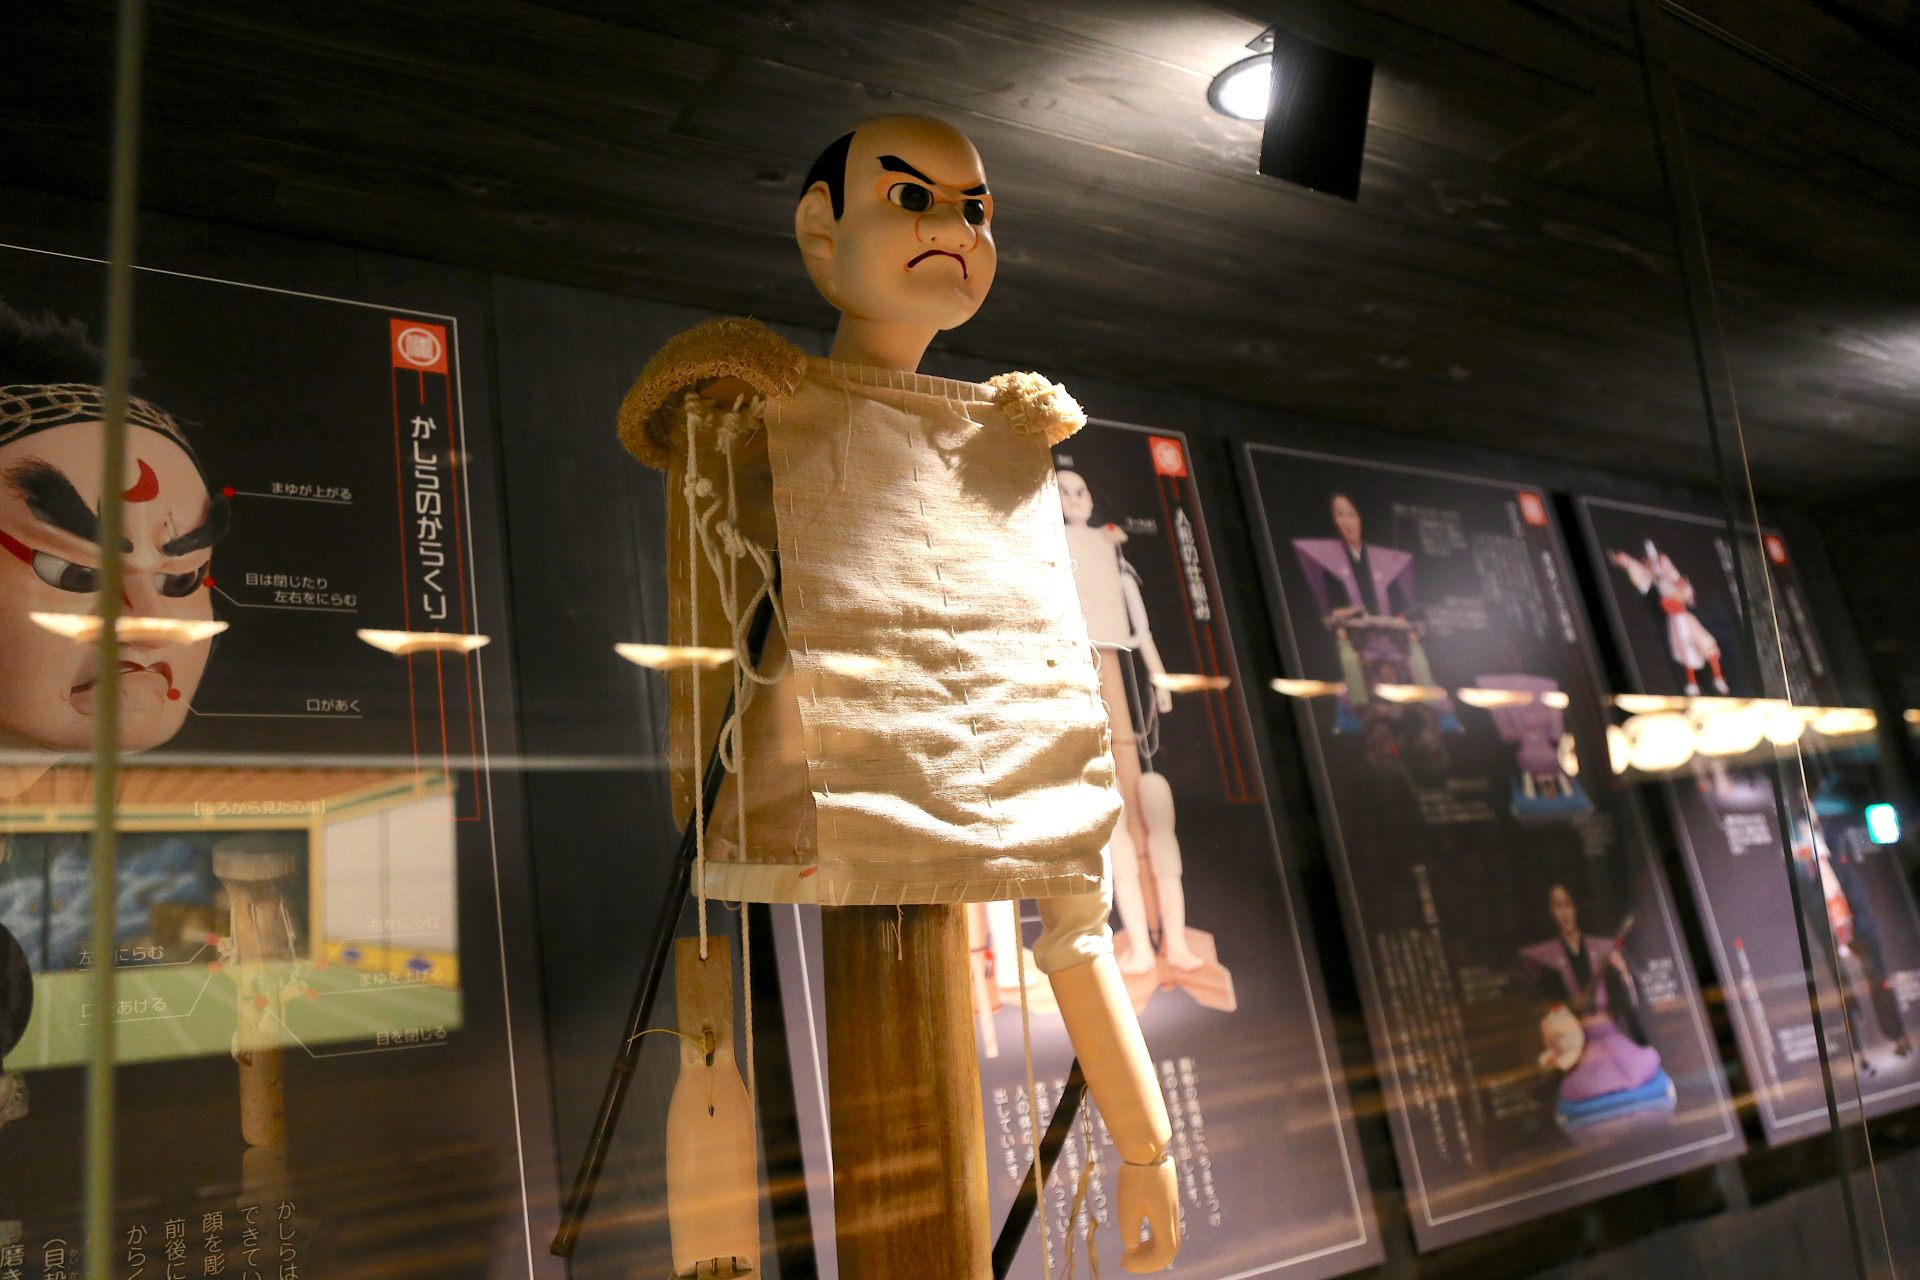 A valuable display that lets you understand at a glance the mechanisms behind the puppets.